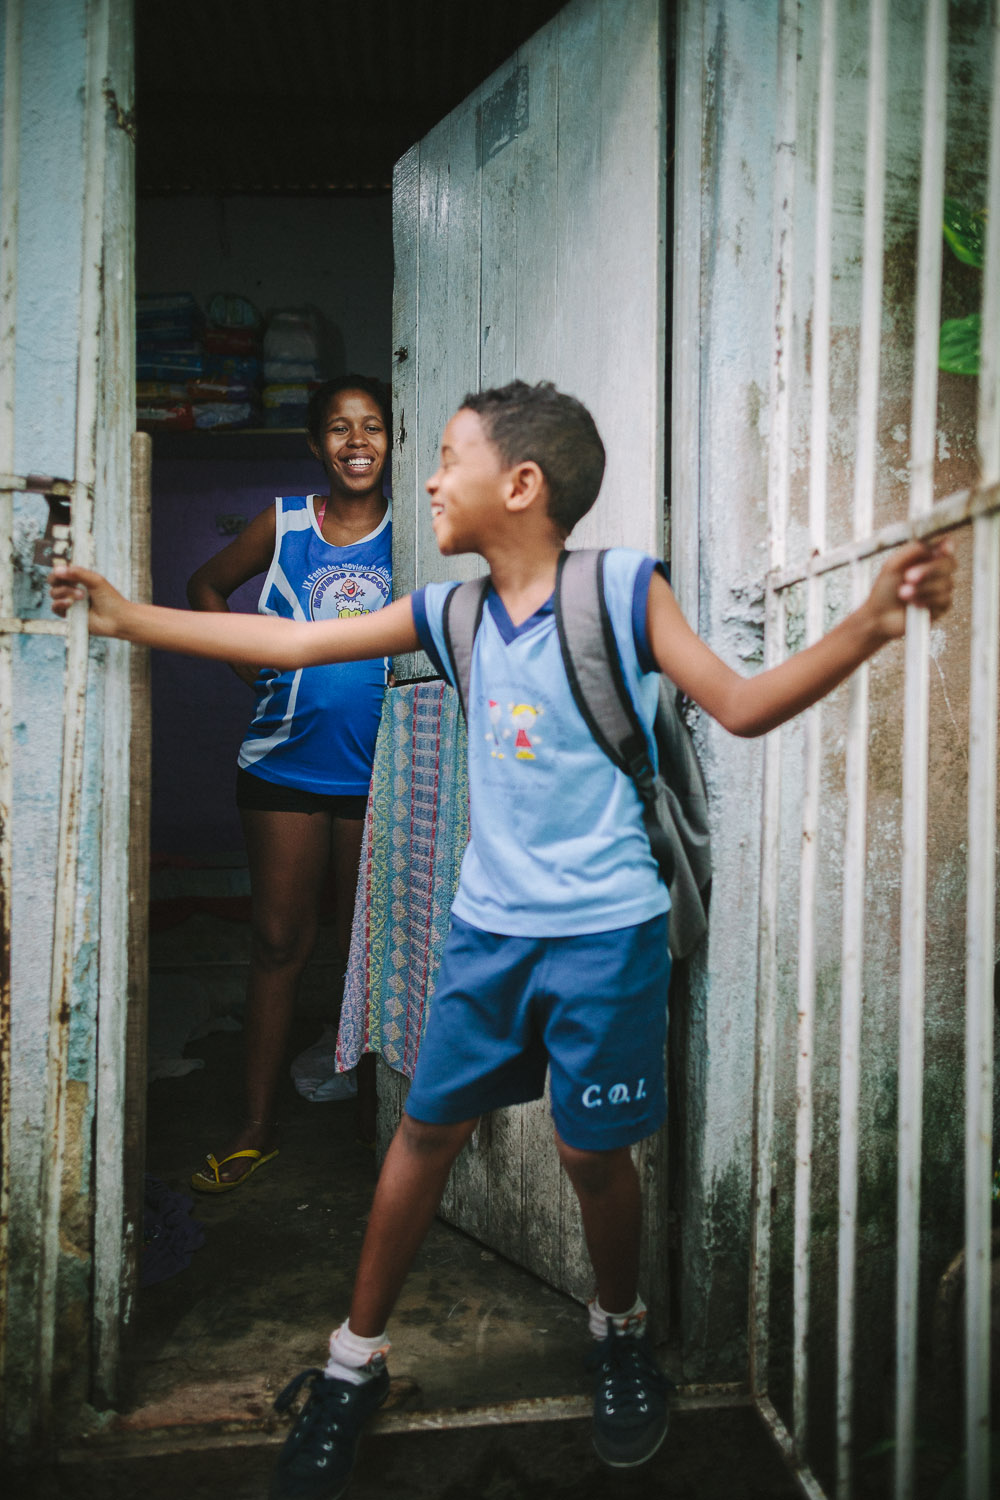 Before leaving home, he always turns to his mother and asks her blessing to keep him safe. Emidio's entire house (housing 4 people---soon to be 5) is perhaps no larger than 8 feet by 10 feet. This is Emidio's morning routine before heading to classes at the Compassion Center.